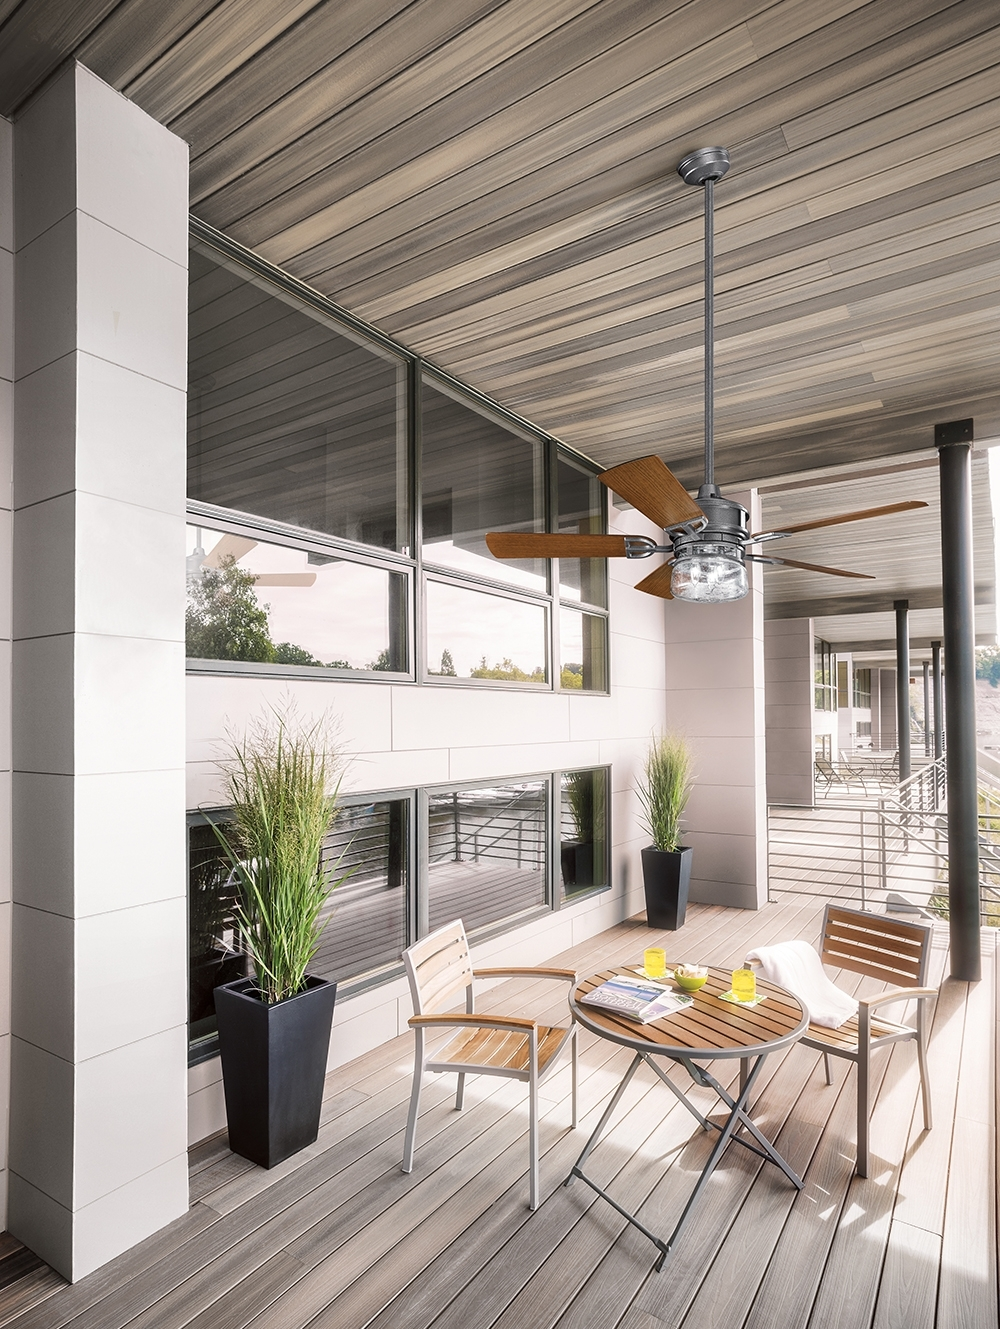 Kichler Outdoor Ceiling Fans – Photos House Interior And Fan For Fashionable Outdoor Patio Ceiling Fans With Lights (View 15 of 20)